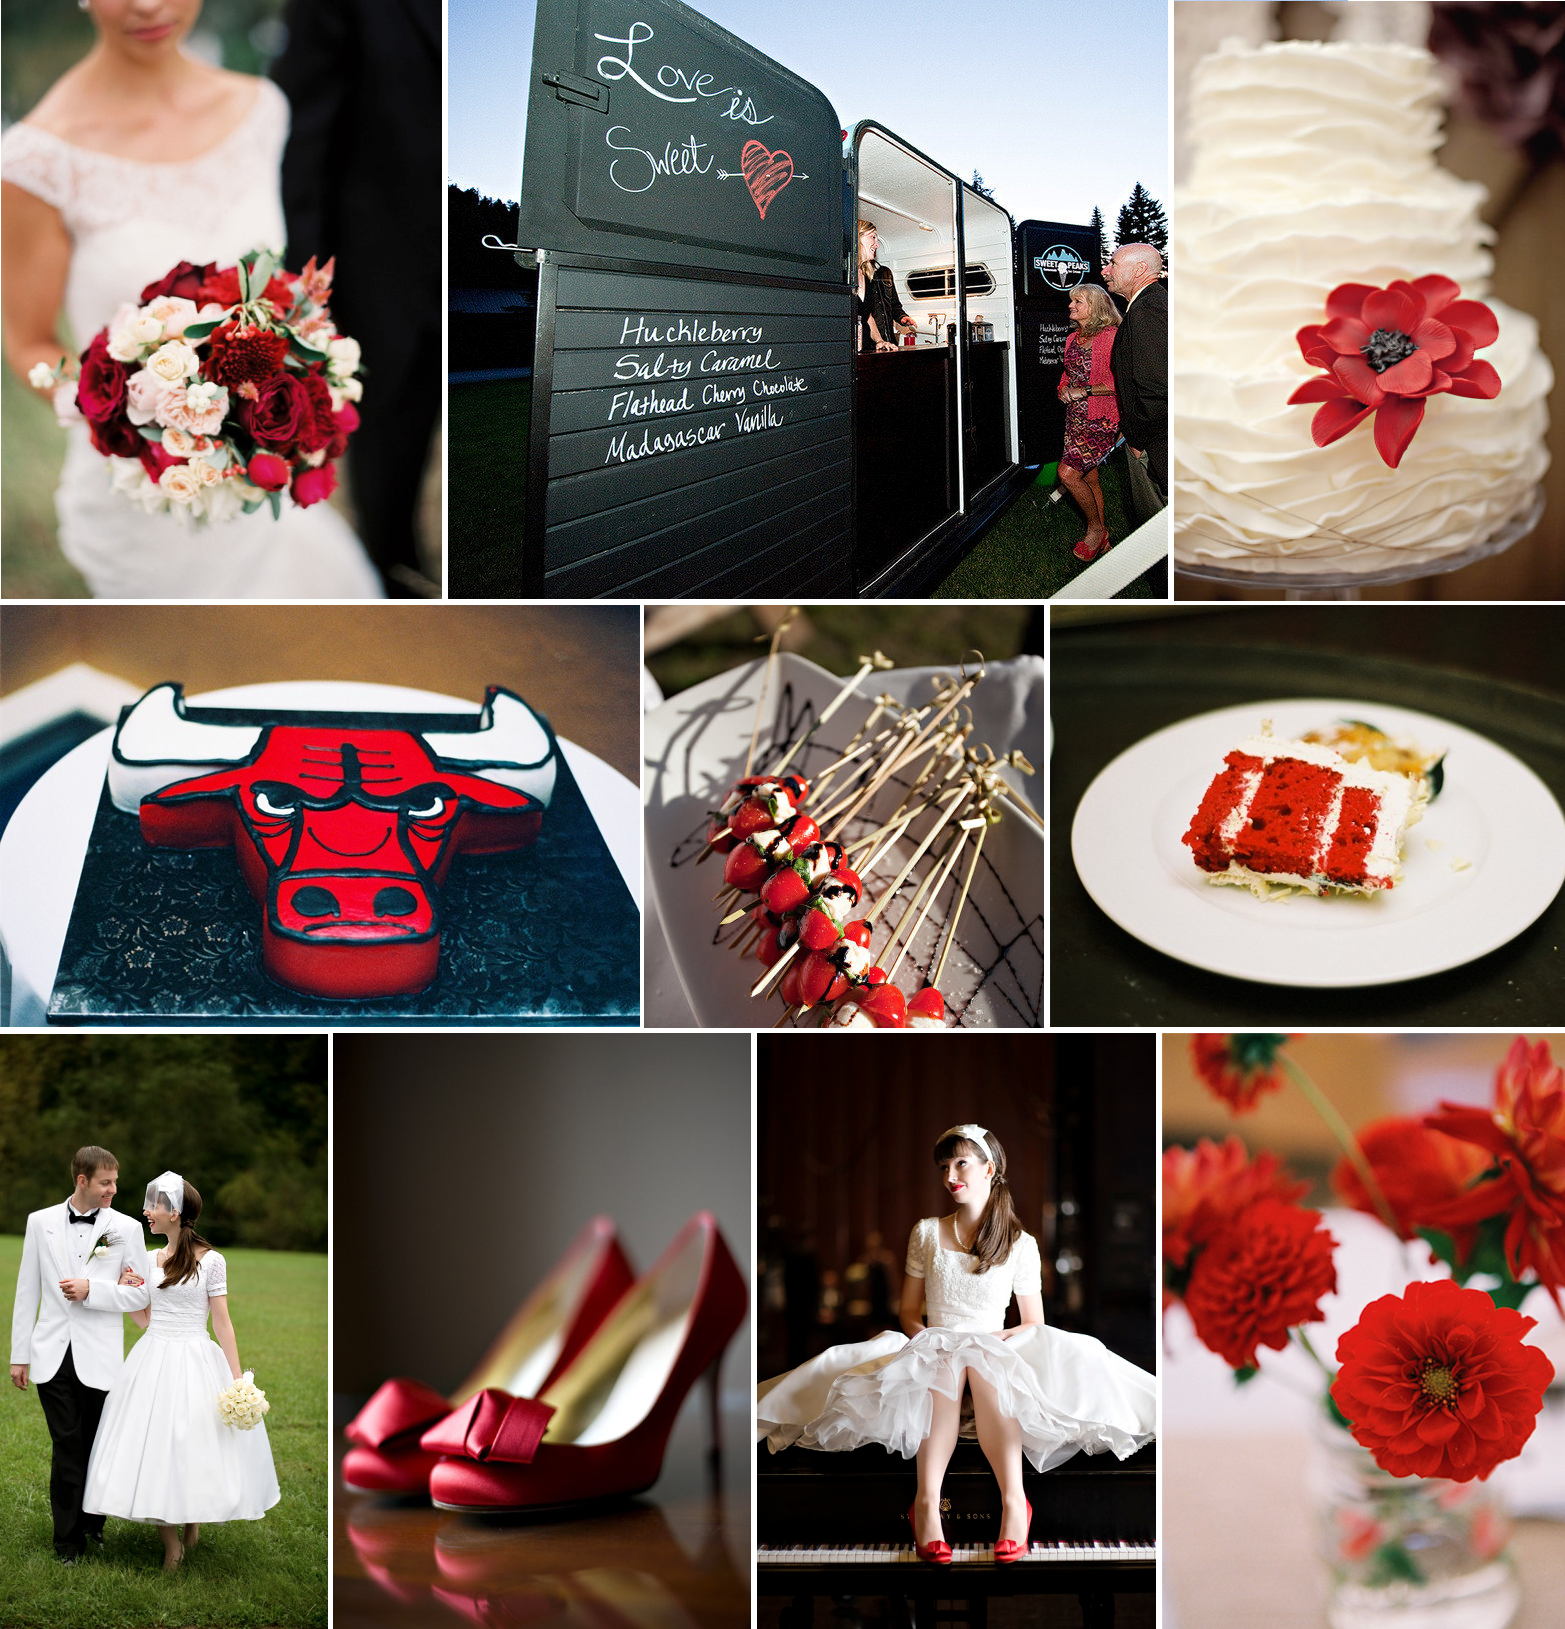 Wedding Red And White Theme: Sports-themed Wedding Ideas- Chicago Bulls Inspired Red